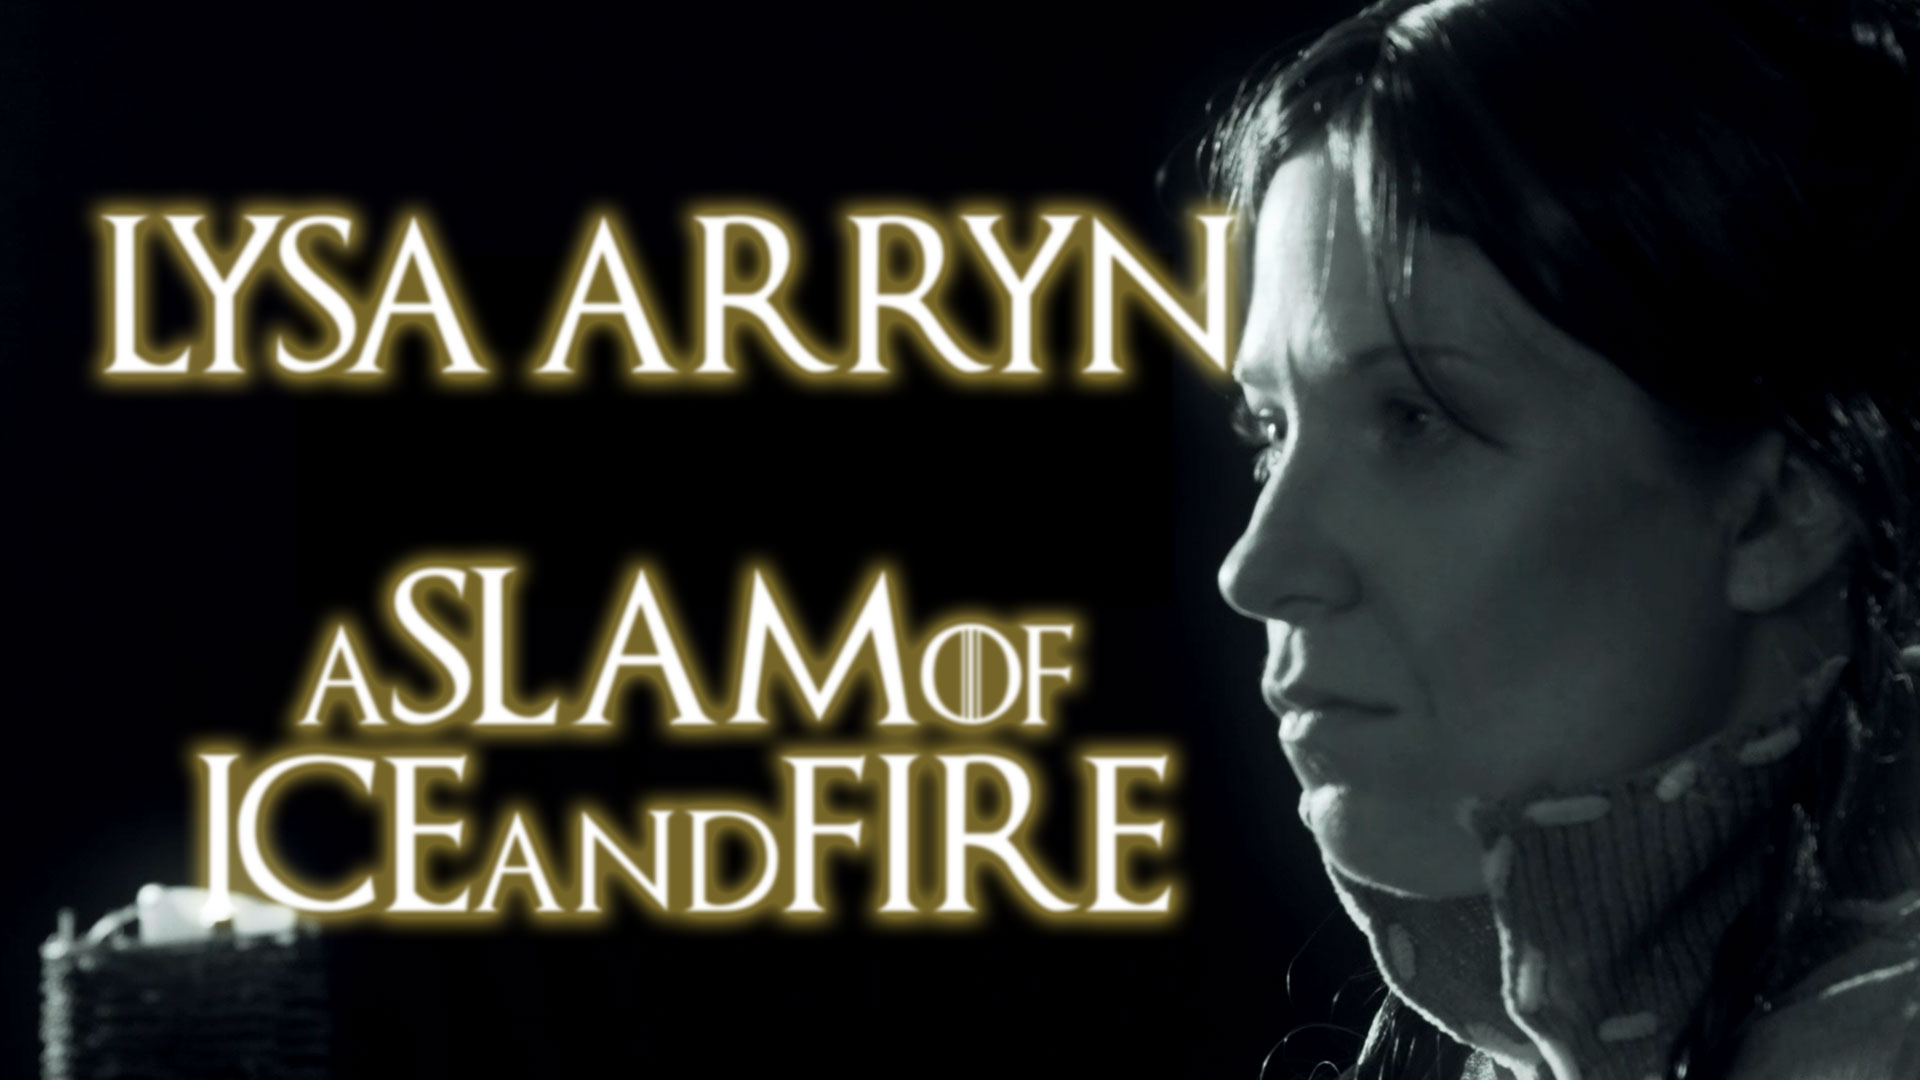 Lysa Arryn –  A Slam of Ice and Fire || Spoken Word